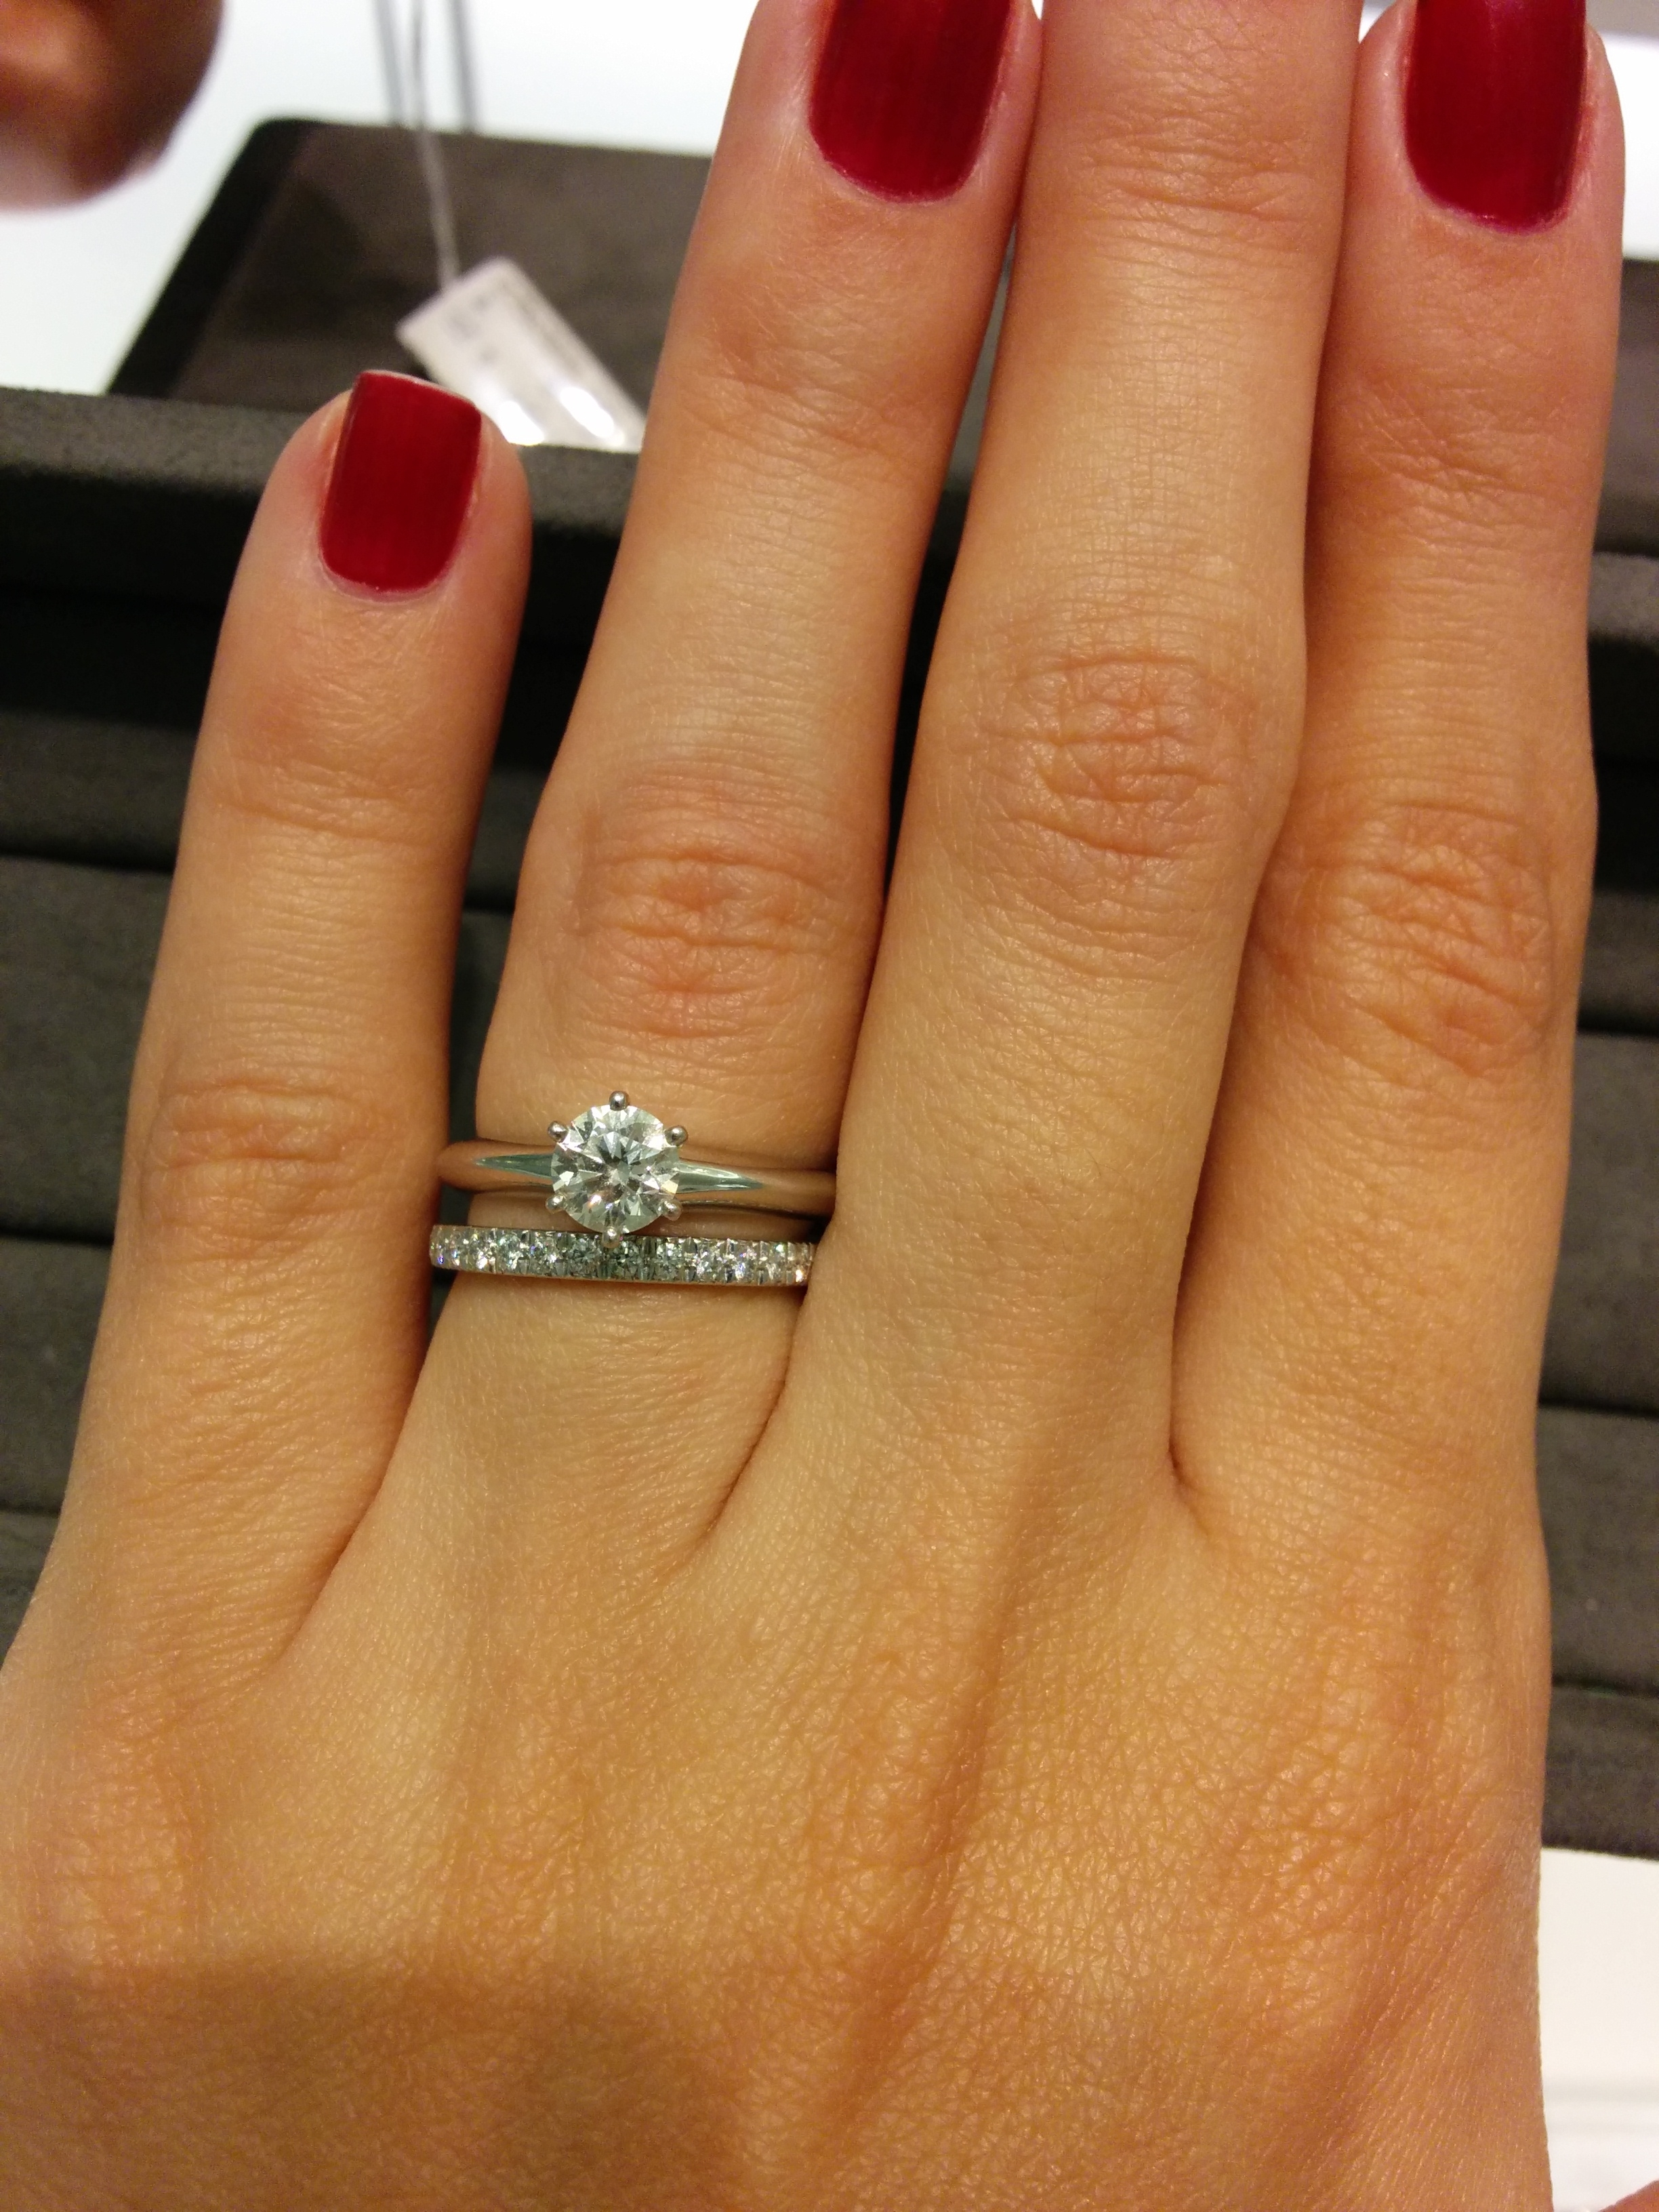 Tiffany Setting + Wedding Bands Intended For Recent Tiffanys Wedding Bands (View 12 of 15)